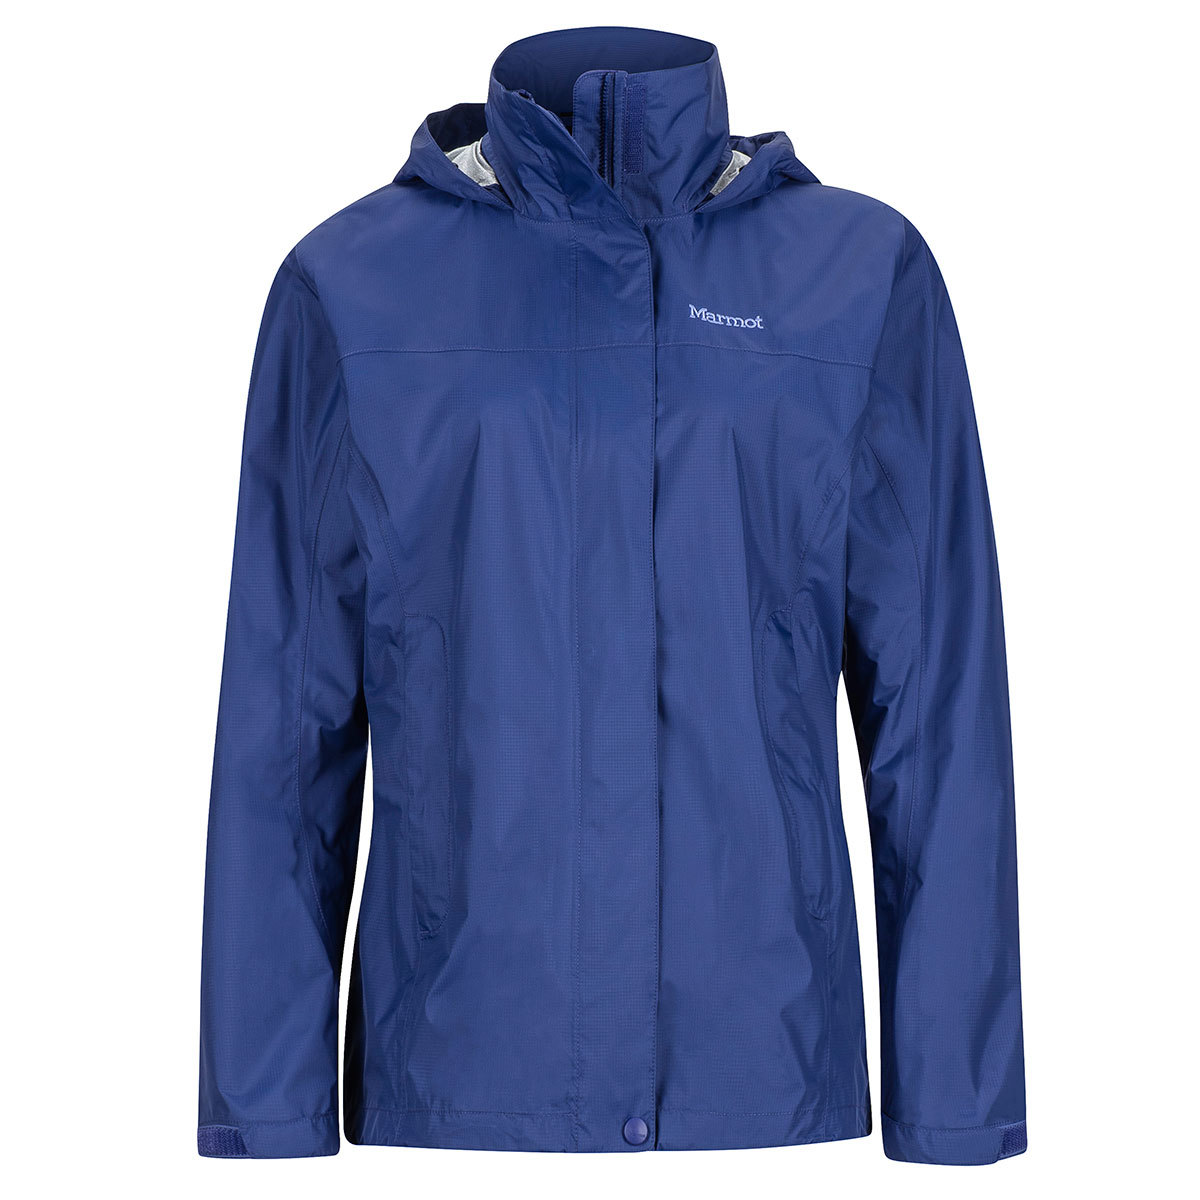 Marmot Women's Precip Jacket - Purple, S